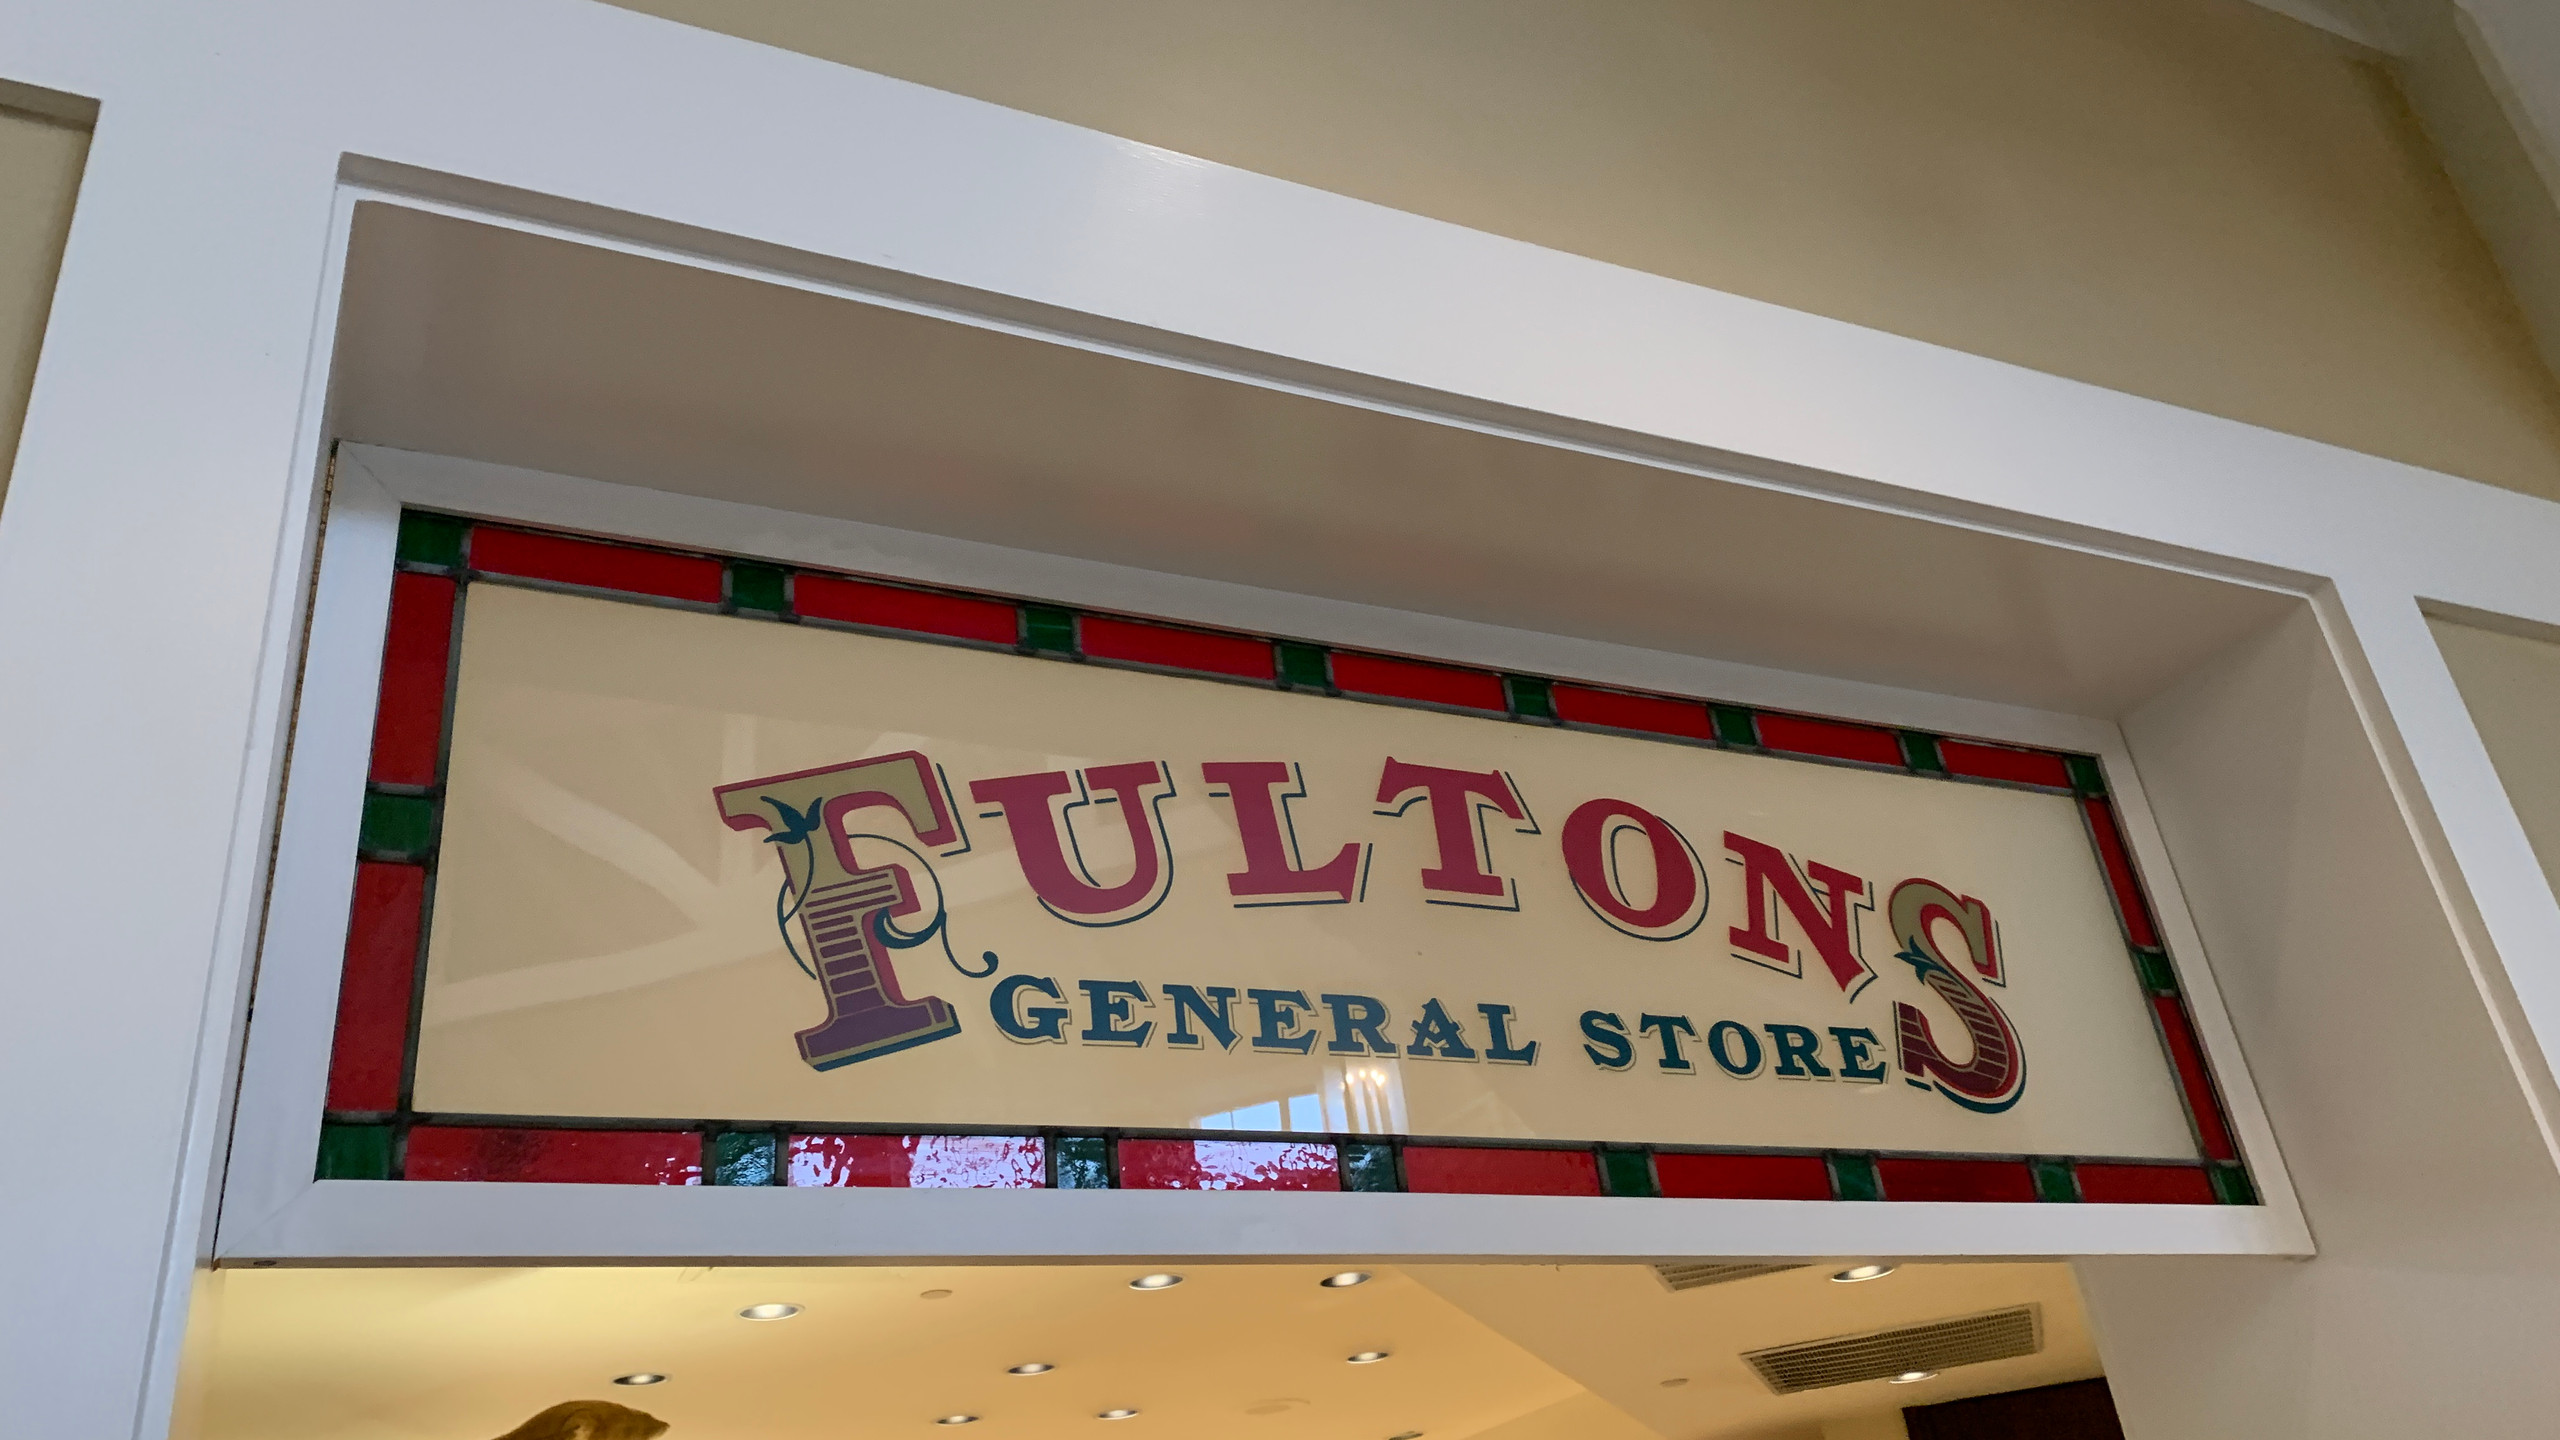 Need a few items during your trip? The General Store has you covered!